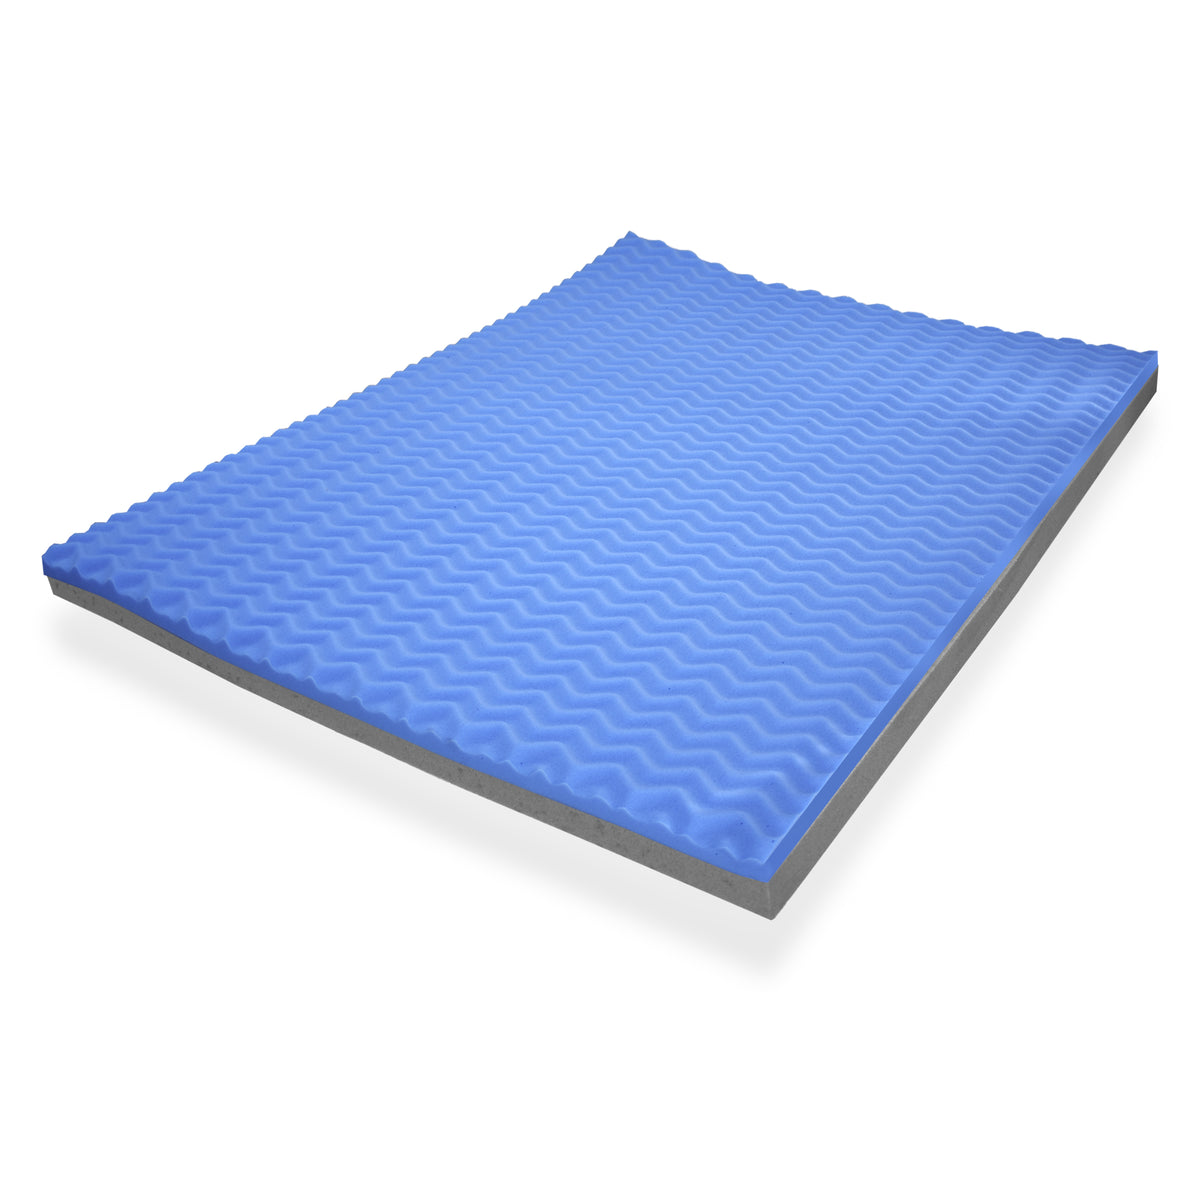 3 Inch Double Sided Mattress Topper Ayer Comfort